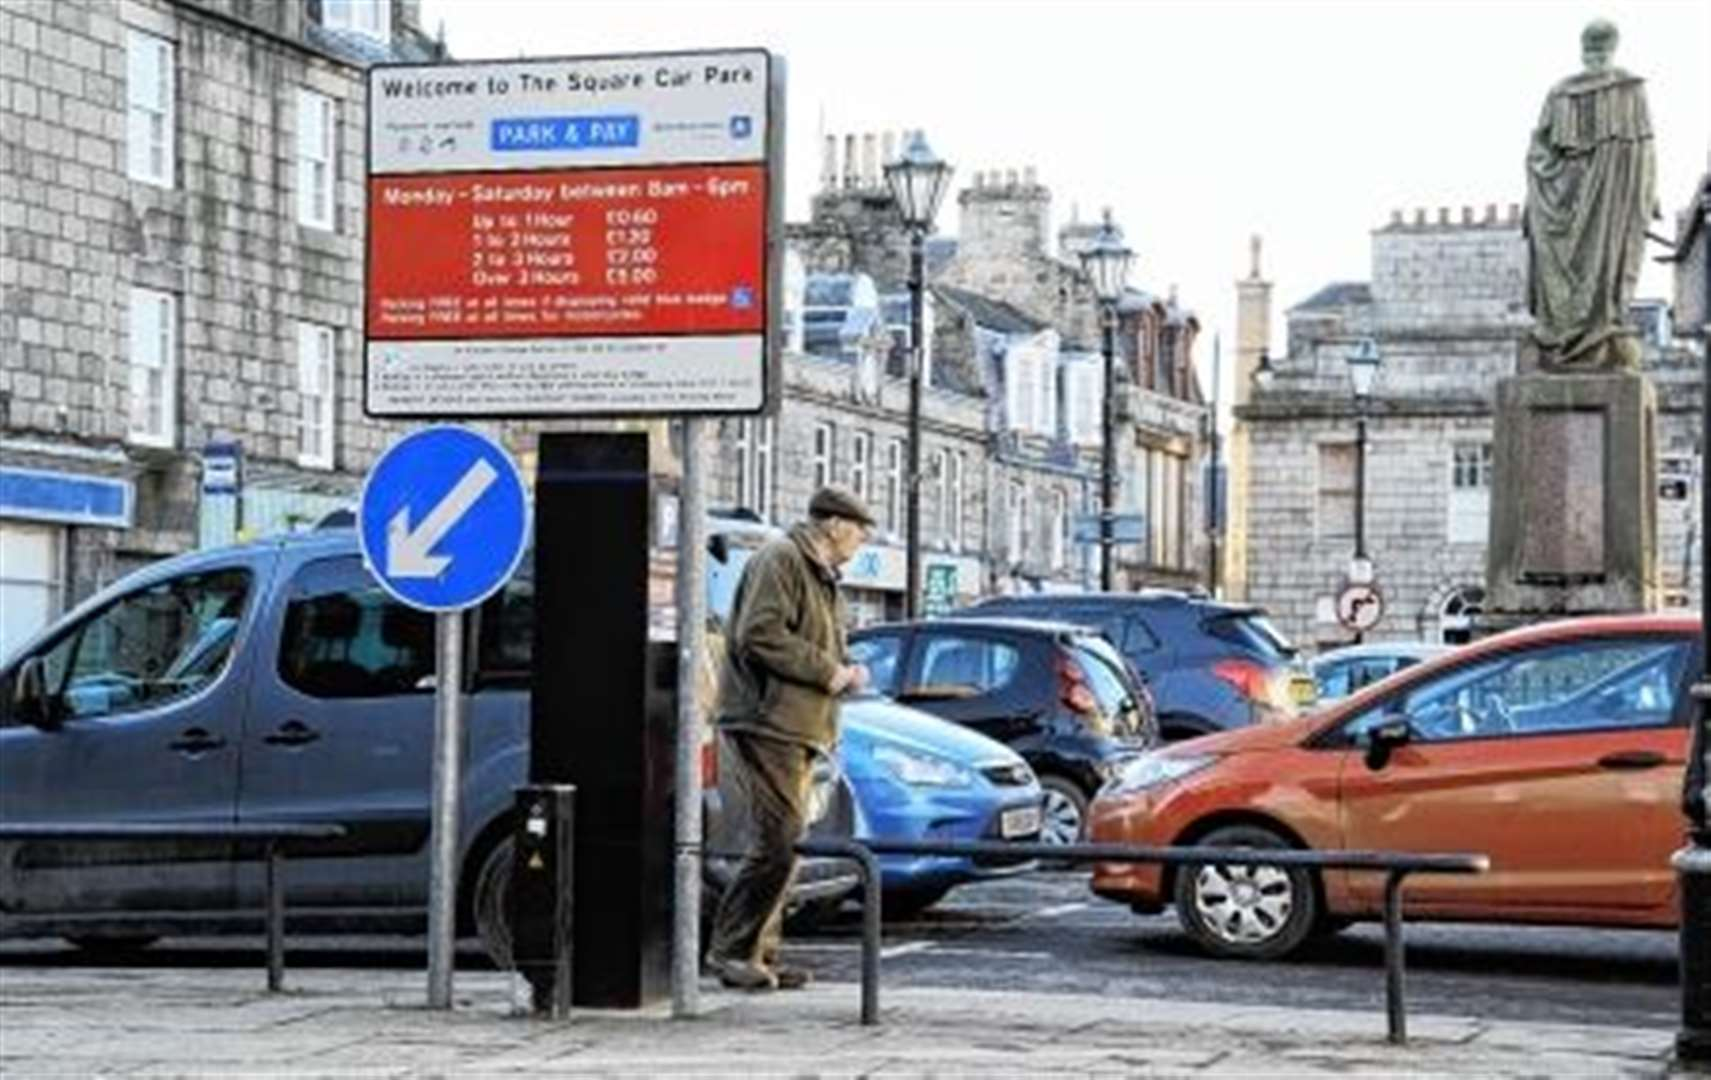 Hopes of free parking fading